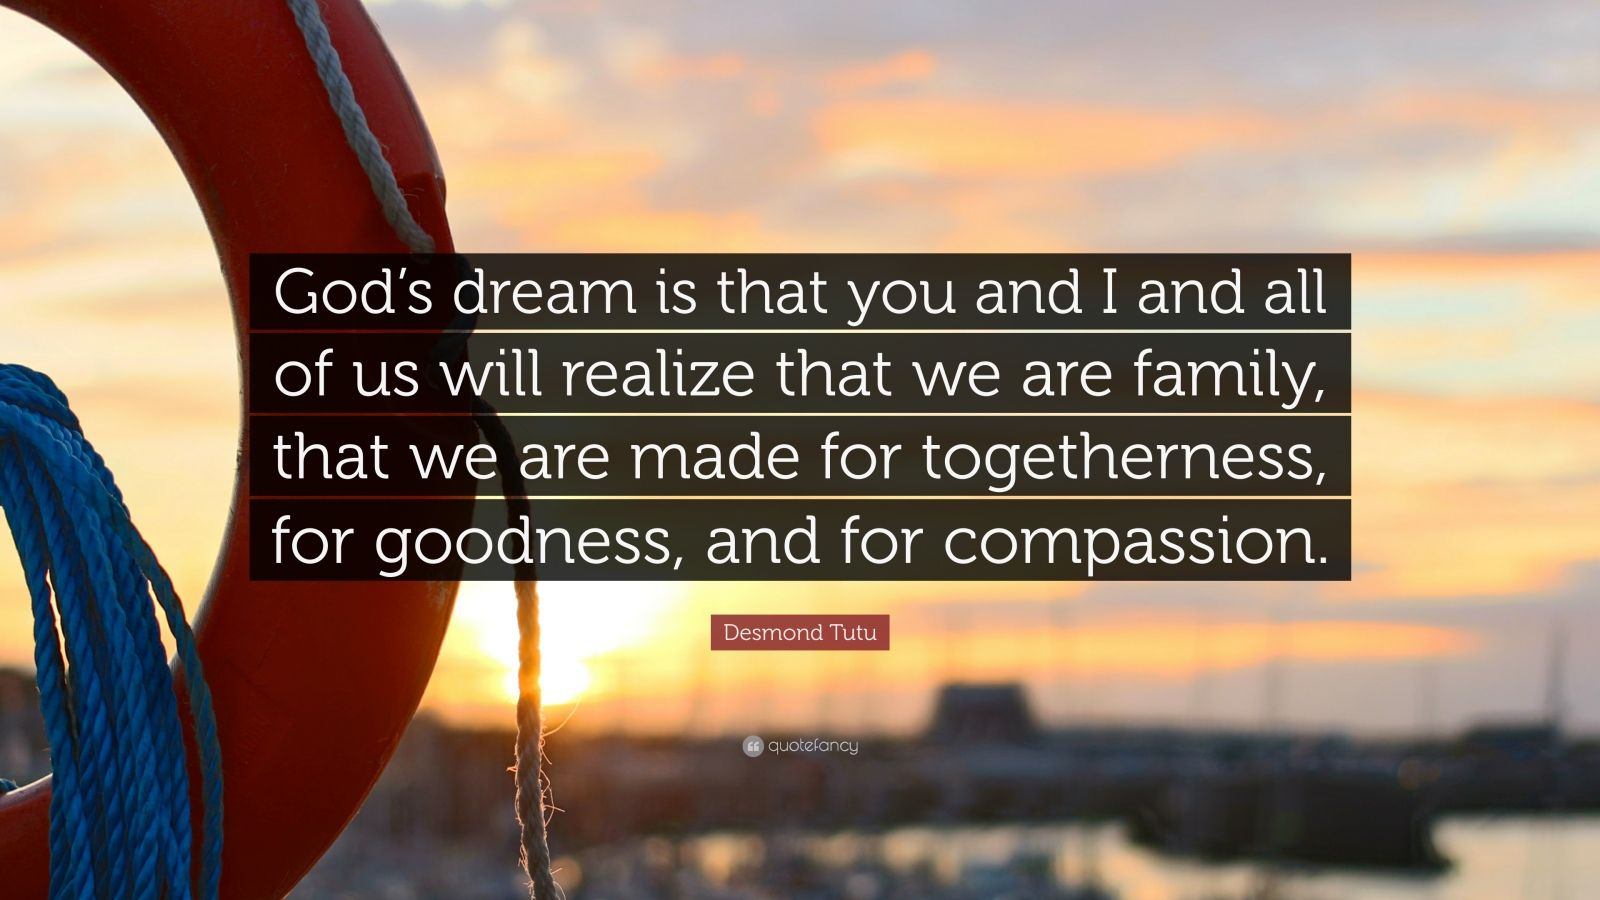 """Desmond Tutu Quote: """"God's dream is that you and I and all of us will realize that we are family, that we are made for togetherness, for goodness, and for compassion."""""""